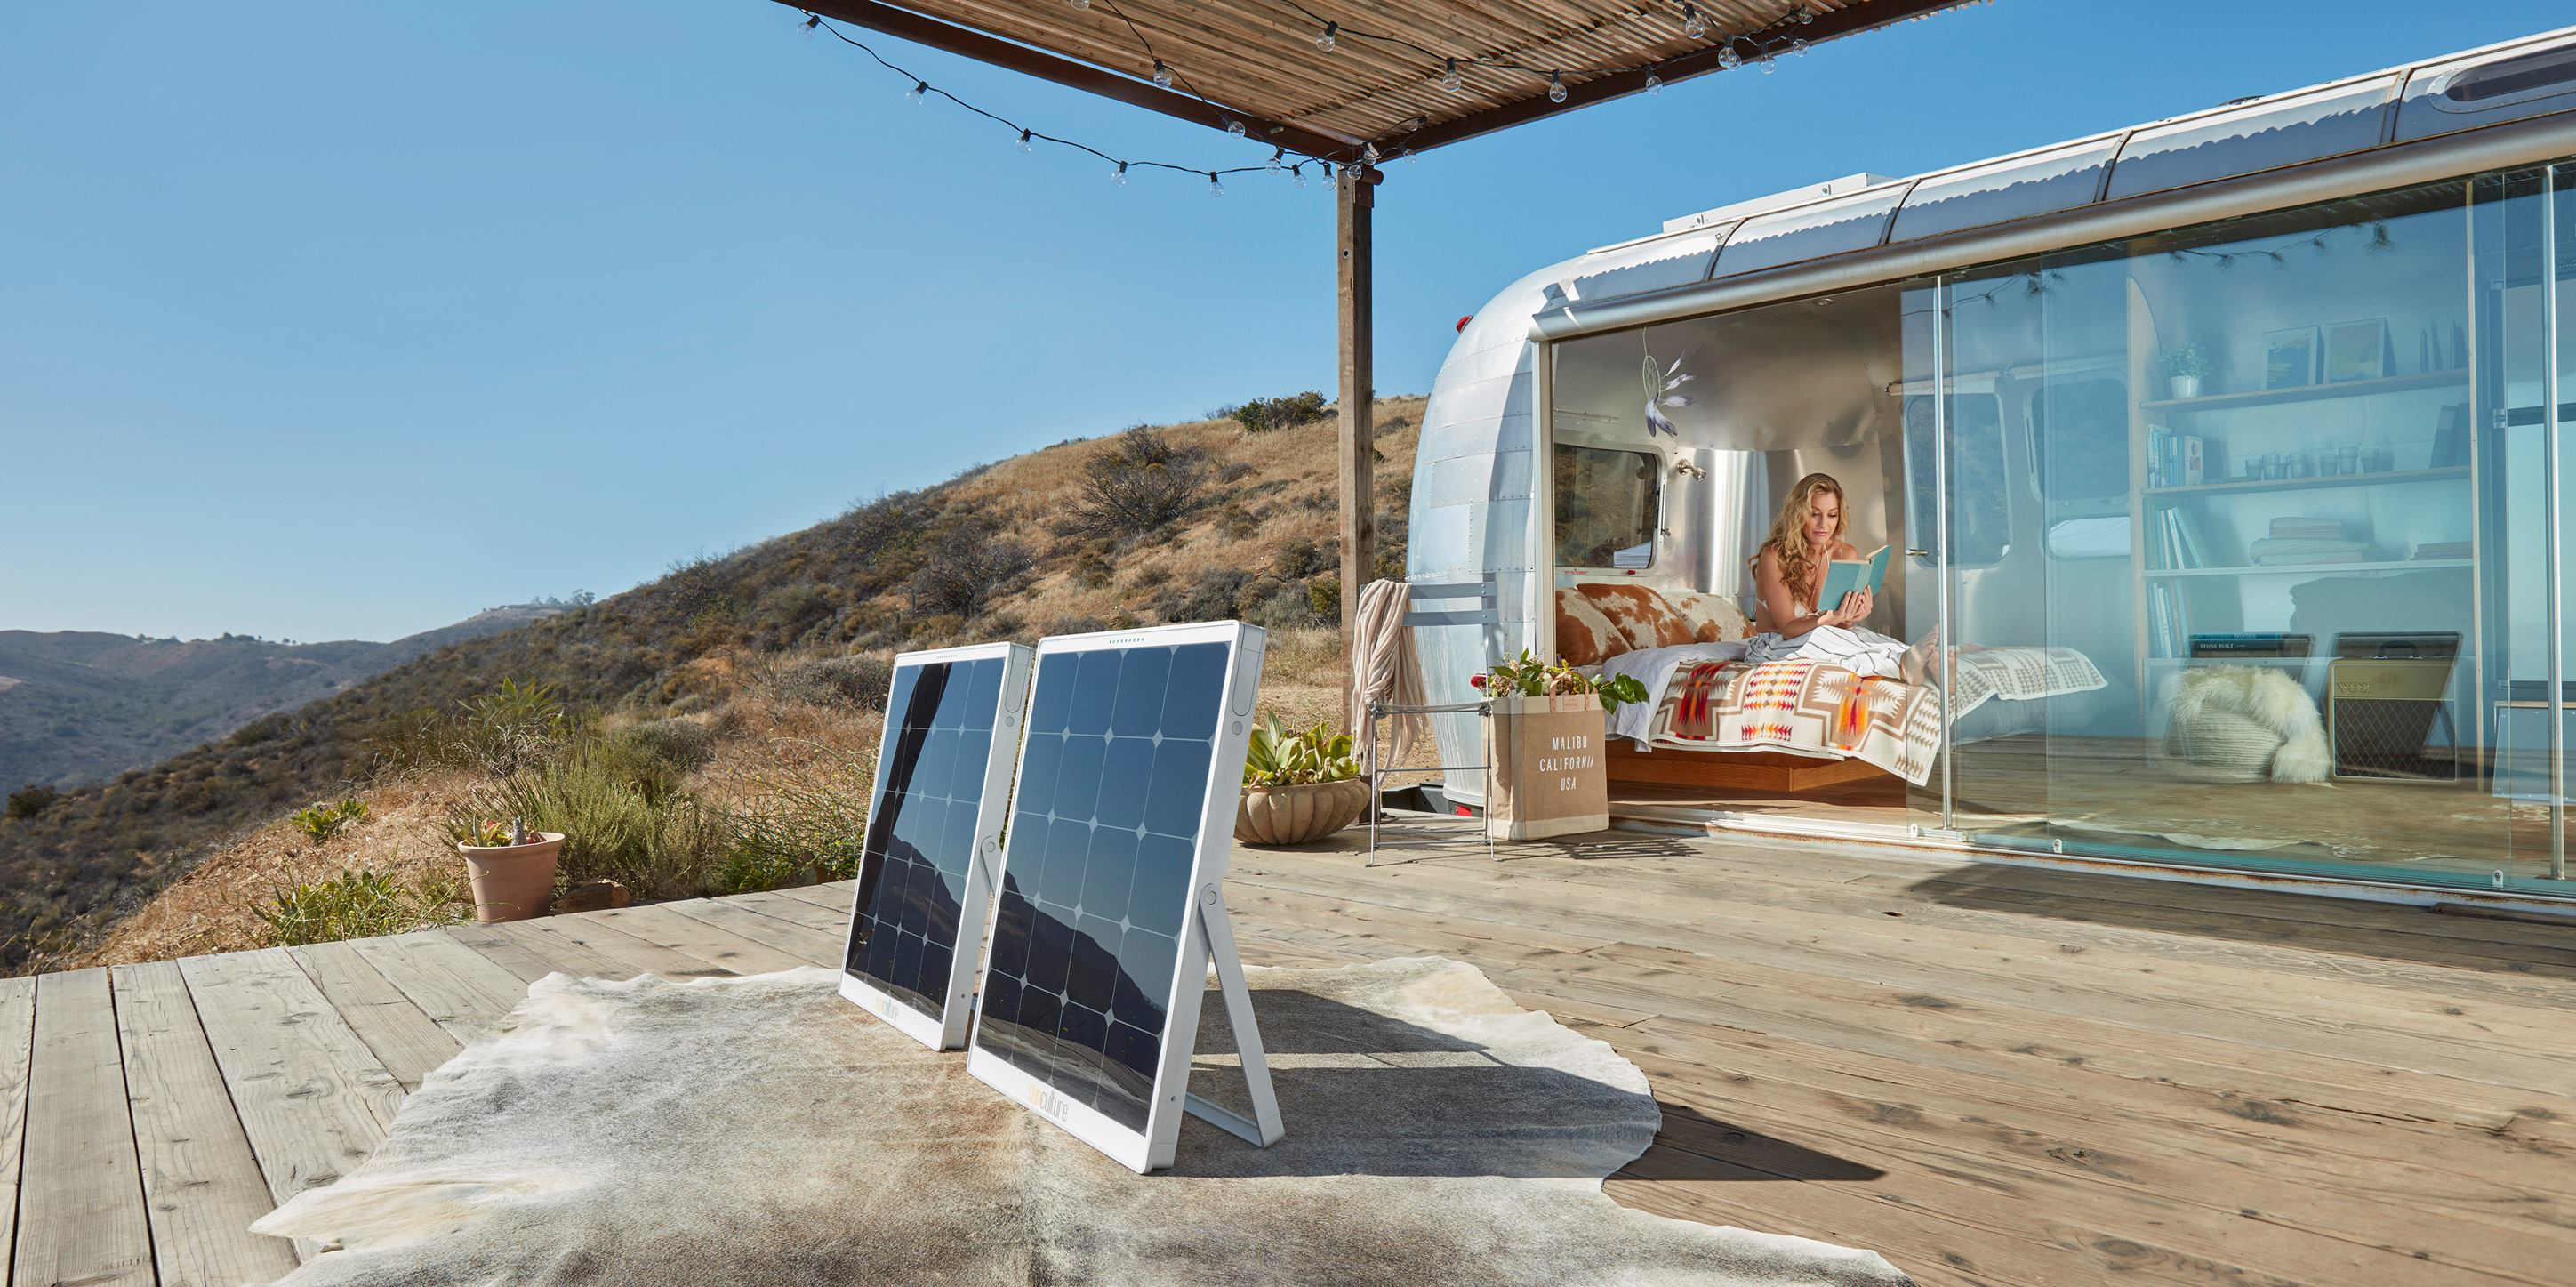 Portable solar panel and battery brings clean energy on the go